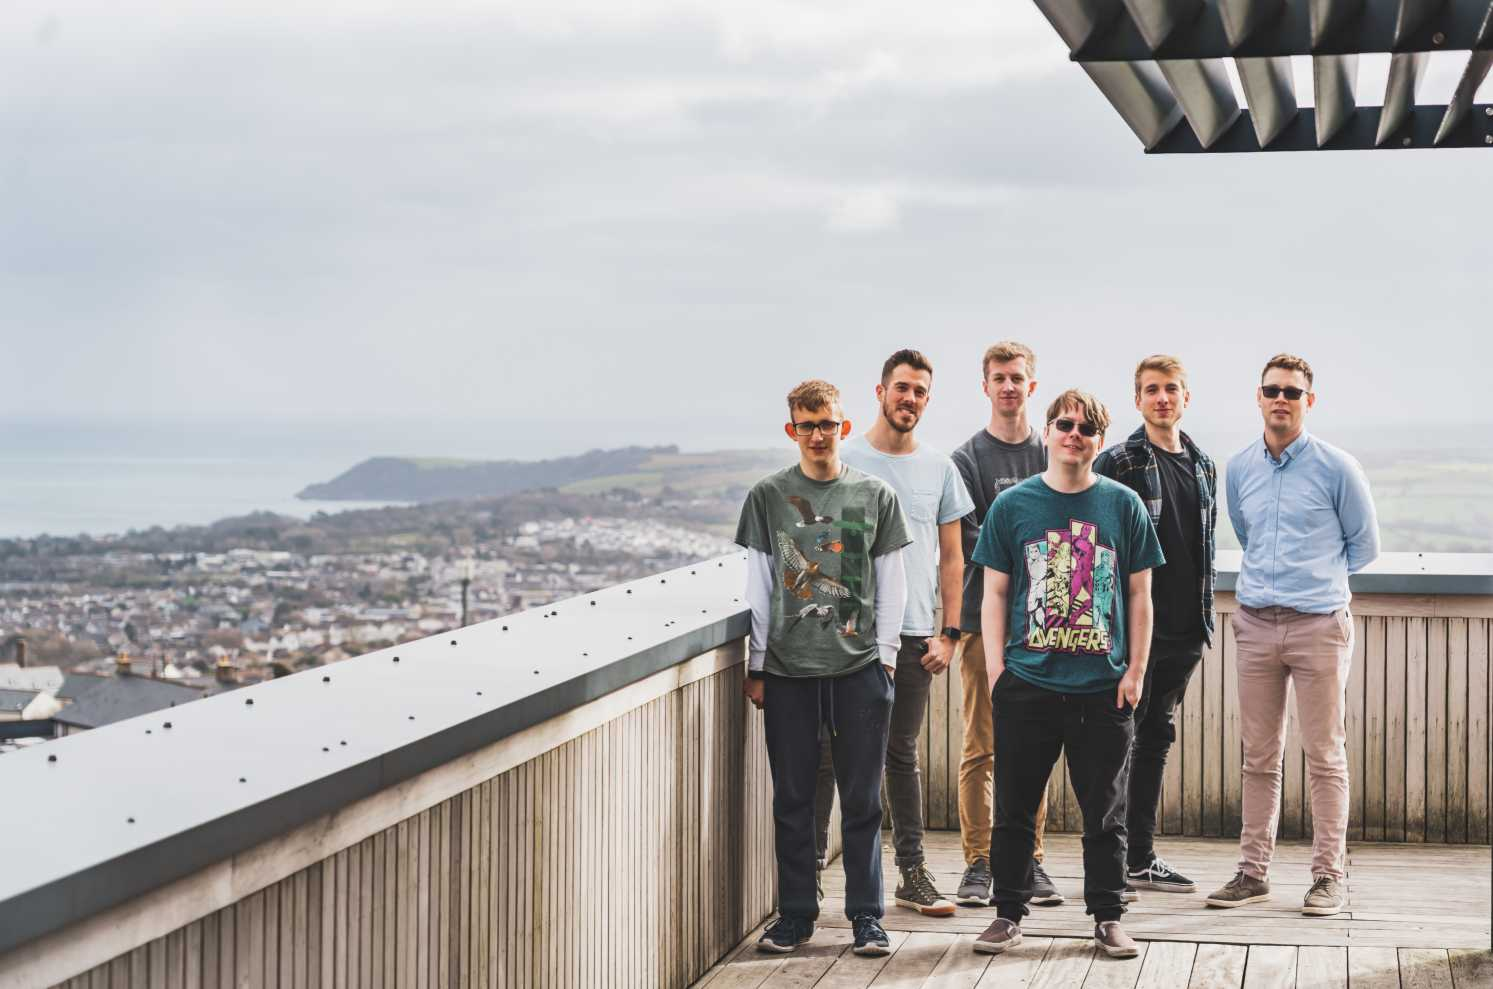 Picture of the hiyield team on a balcony - hiyield are a Digital Agency in Cornwall.